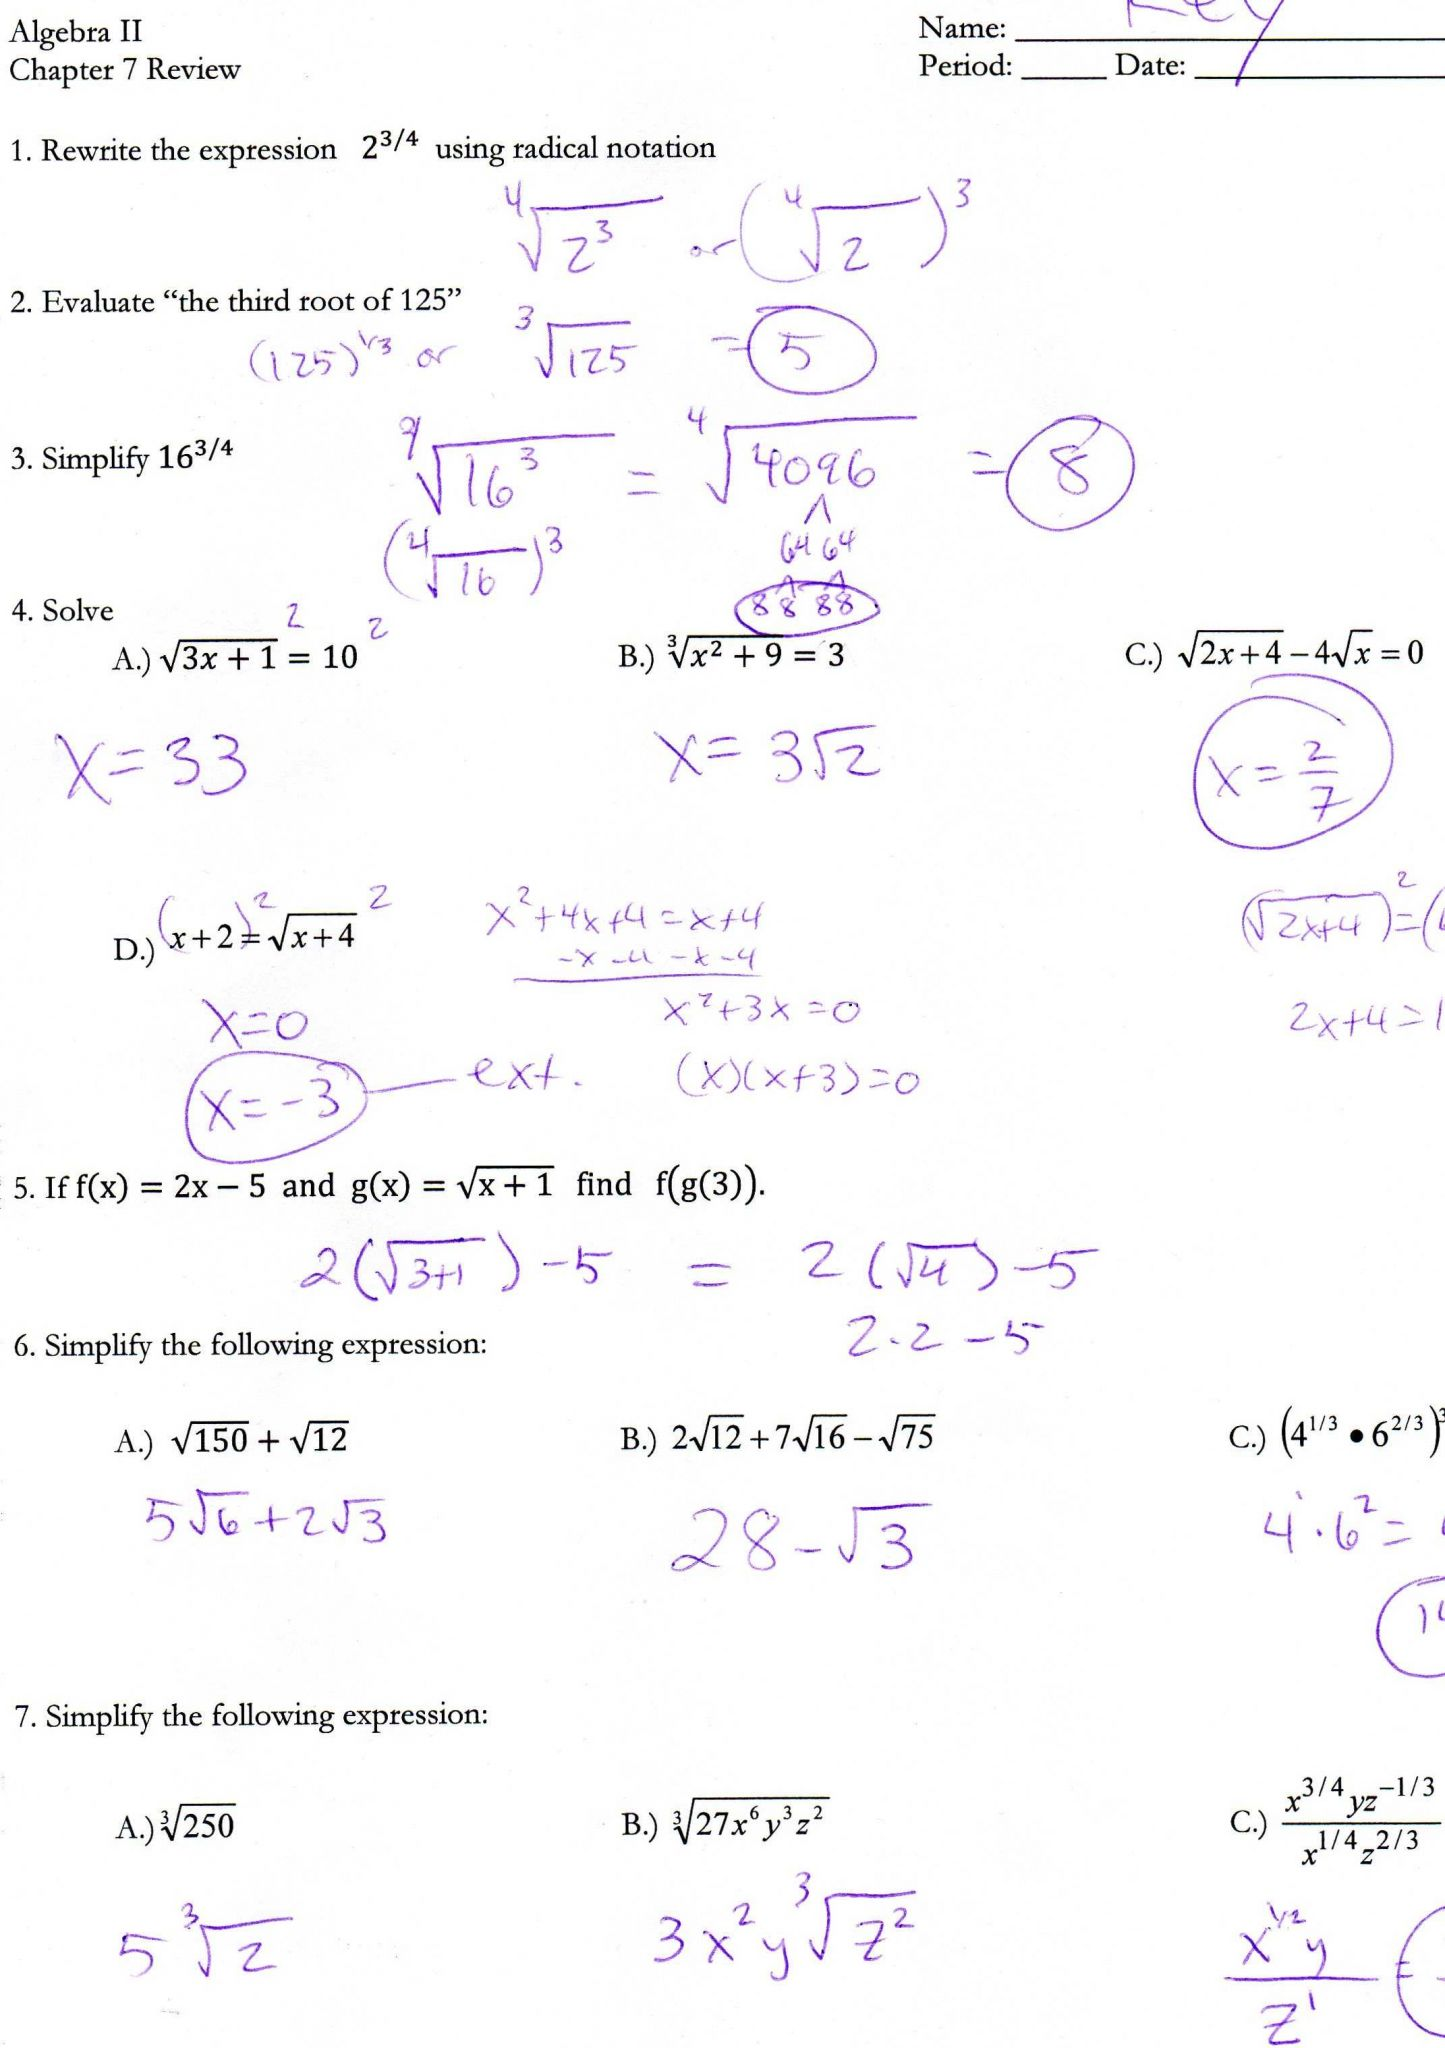 Radicals and Rational Exponents Worksheet Answers as Well as Algebra 2 Chapter 5 Quadratic Equations and Functions Answers